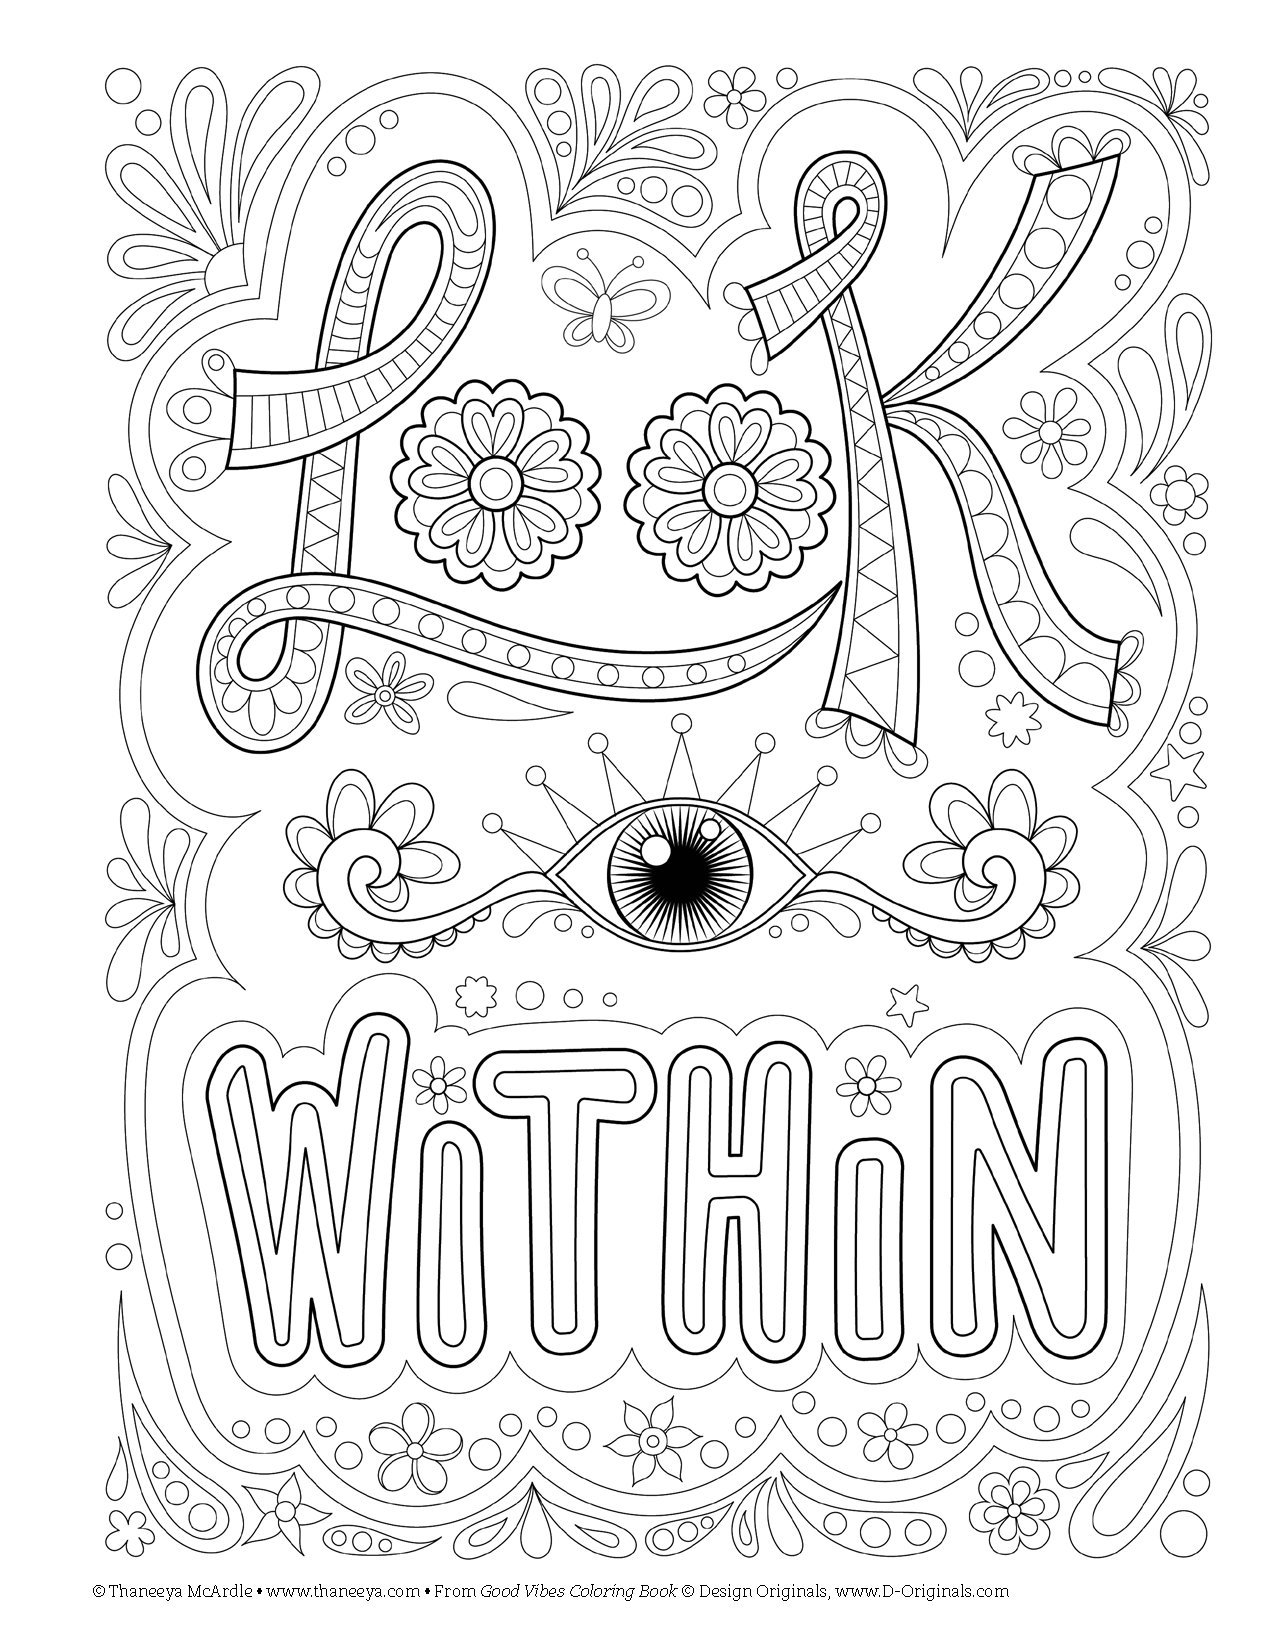 Coloring book download zip - Amazon Com Good Vibes Coloring Book Coloring Is Fun Design Originals 30 Beginner Friendly Relaxing Creative Art Activities On High Quality